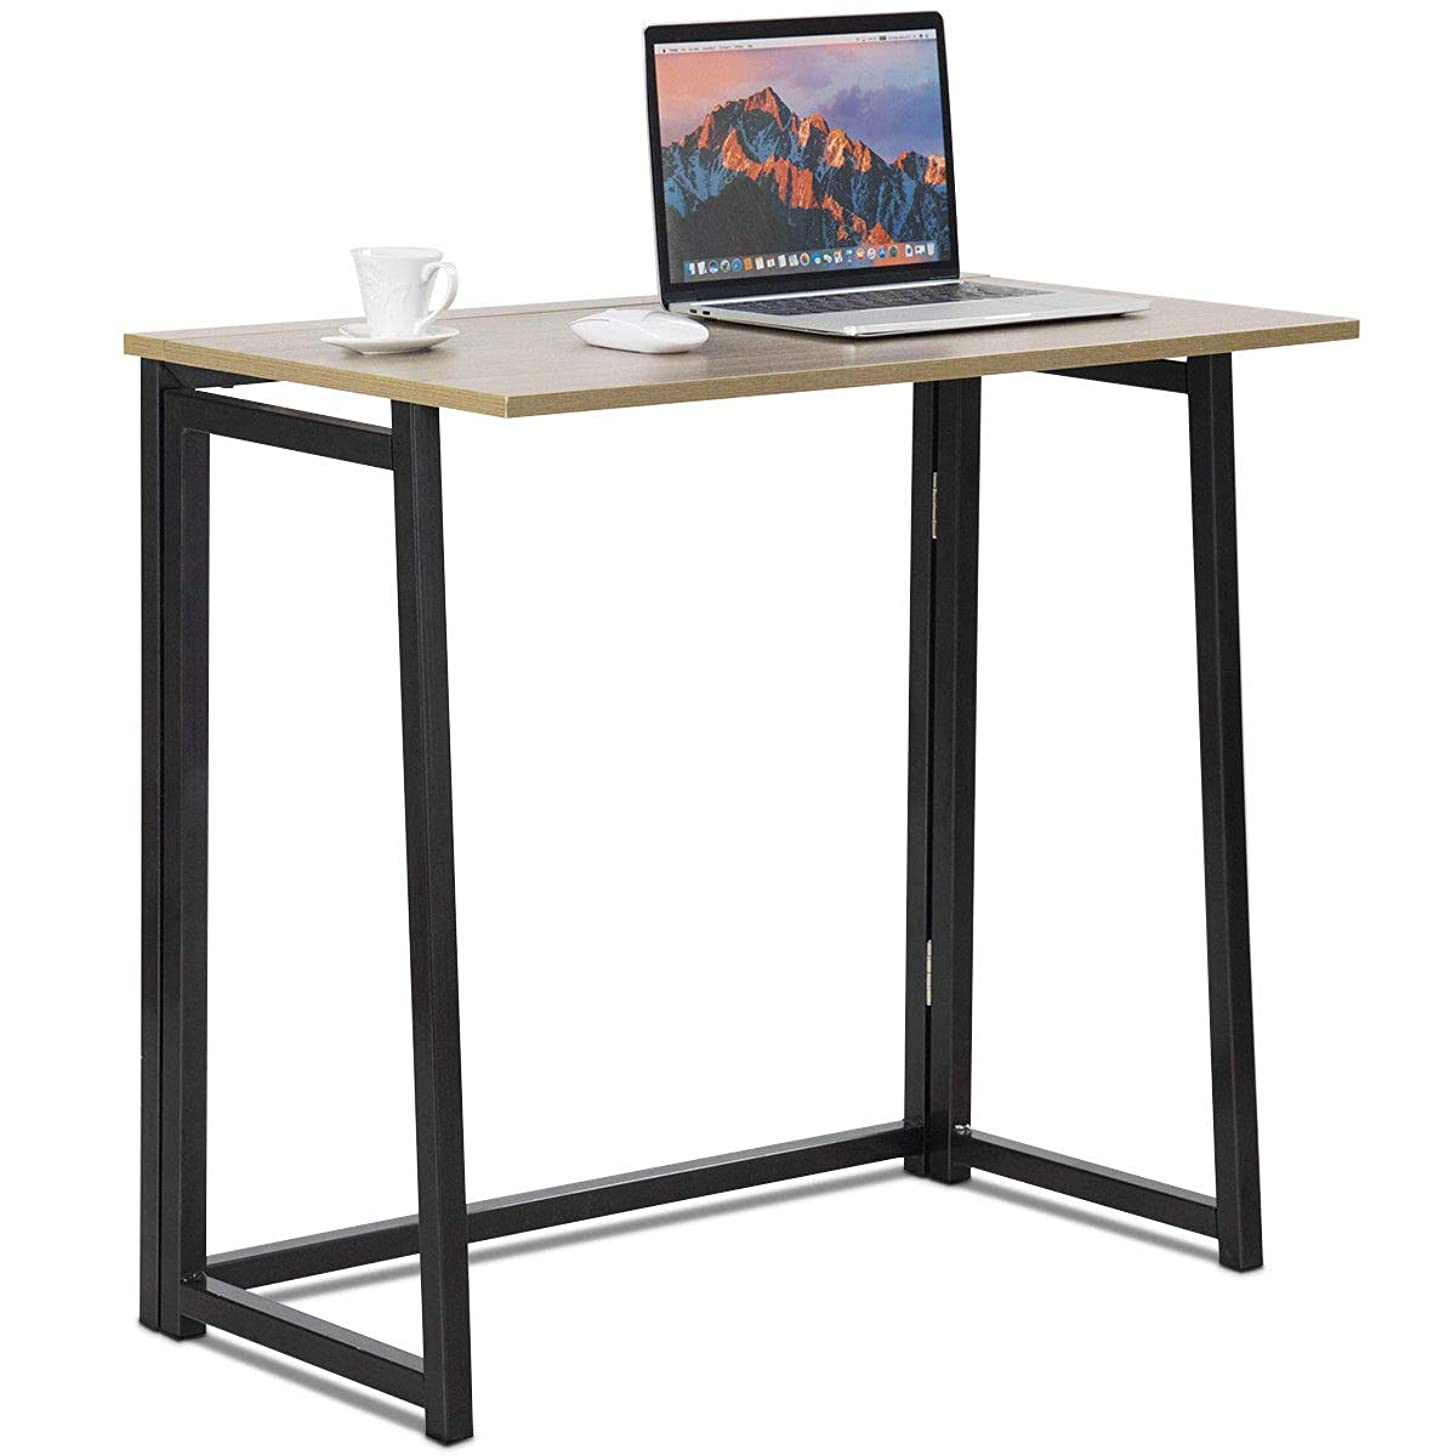 Tangkula Folding Table, Small Foldable Computer Desk, Home Office Laptop Table Writing Desk, Compact Study Reading Table for Small Space, Space Saving Office Table (Natural)